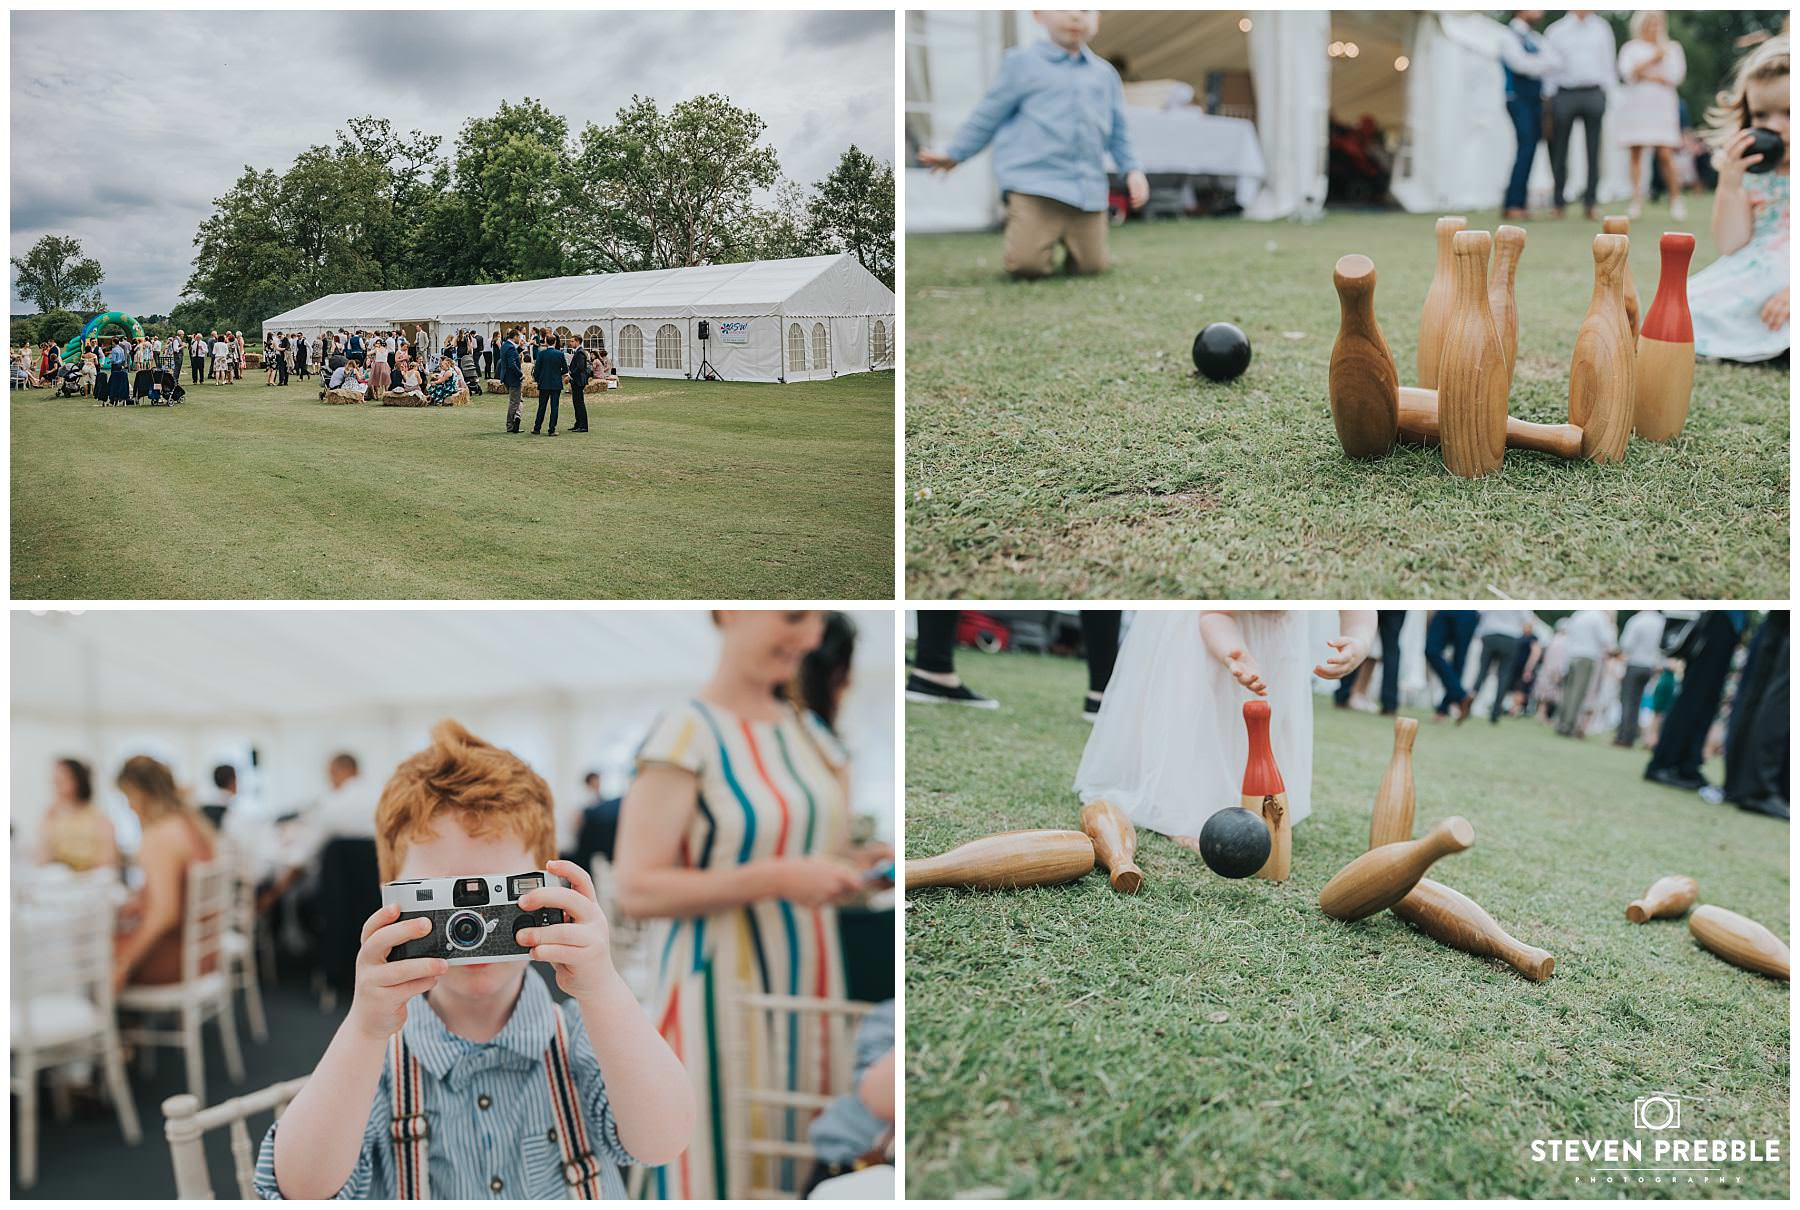 outdoor bowling skittles at wedding on lawn